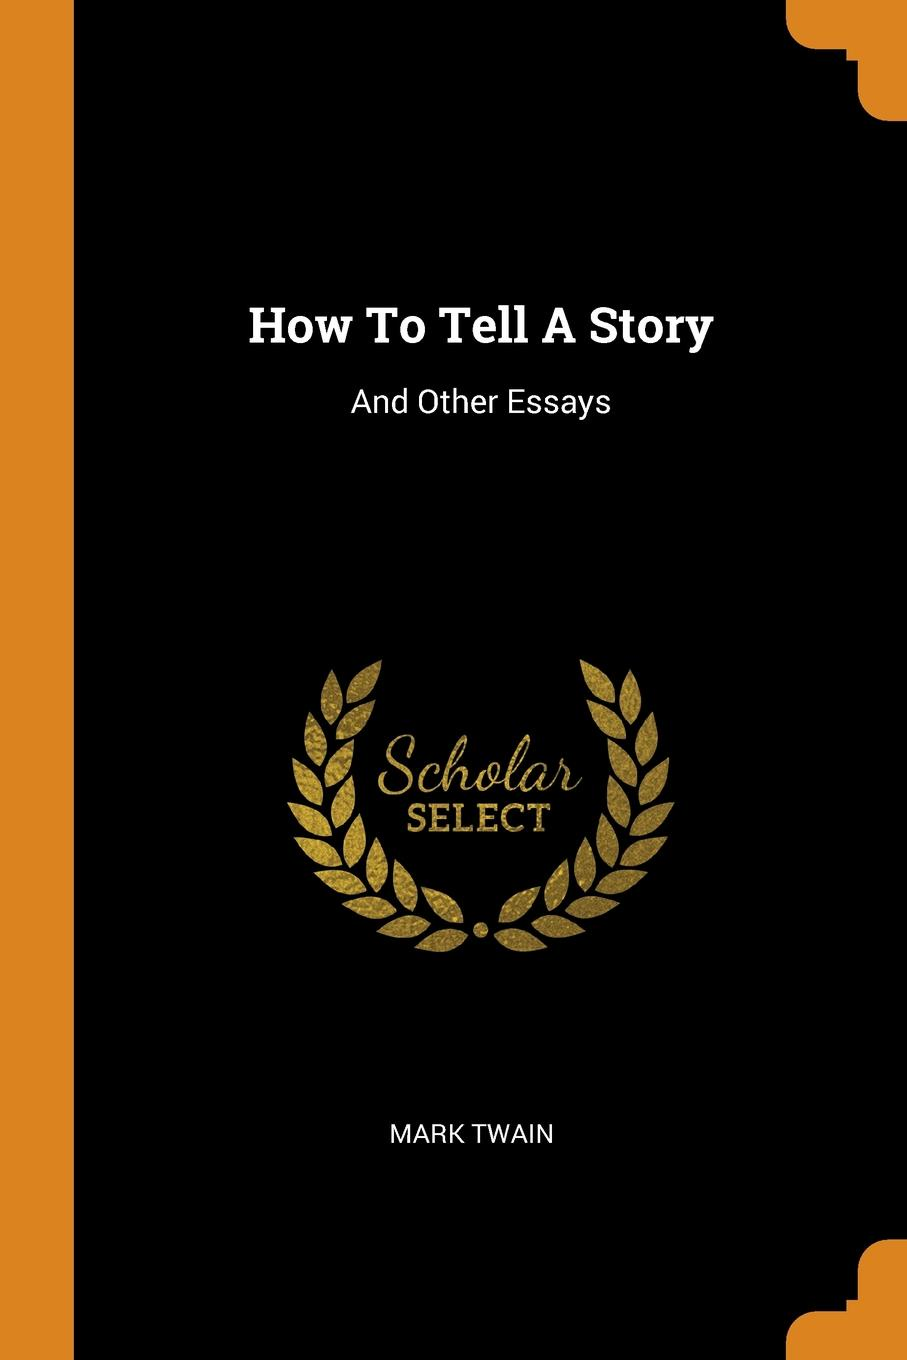 Mark Twain How To Tell A Story. And Other Essays марк твен how to tell a story and other essays